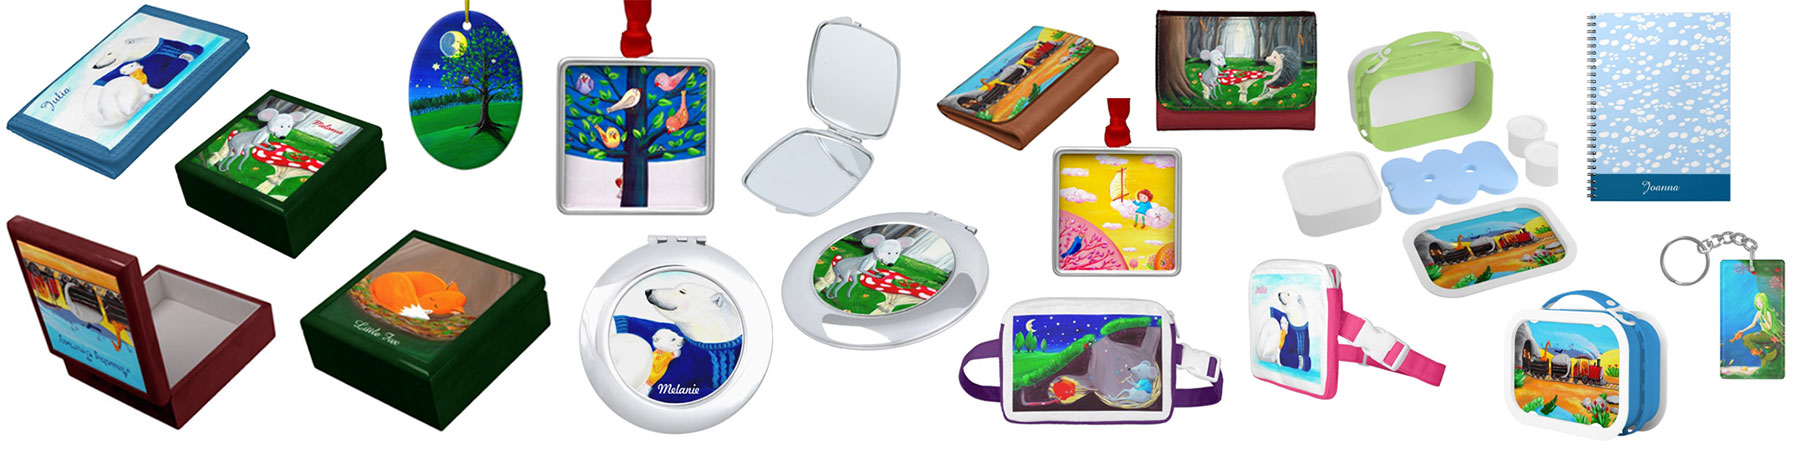 Different gift ideas for kids: keepsake boxes, mirrors, wallets, notebooks, bags, ornaments, etc.